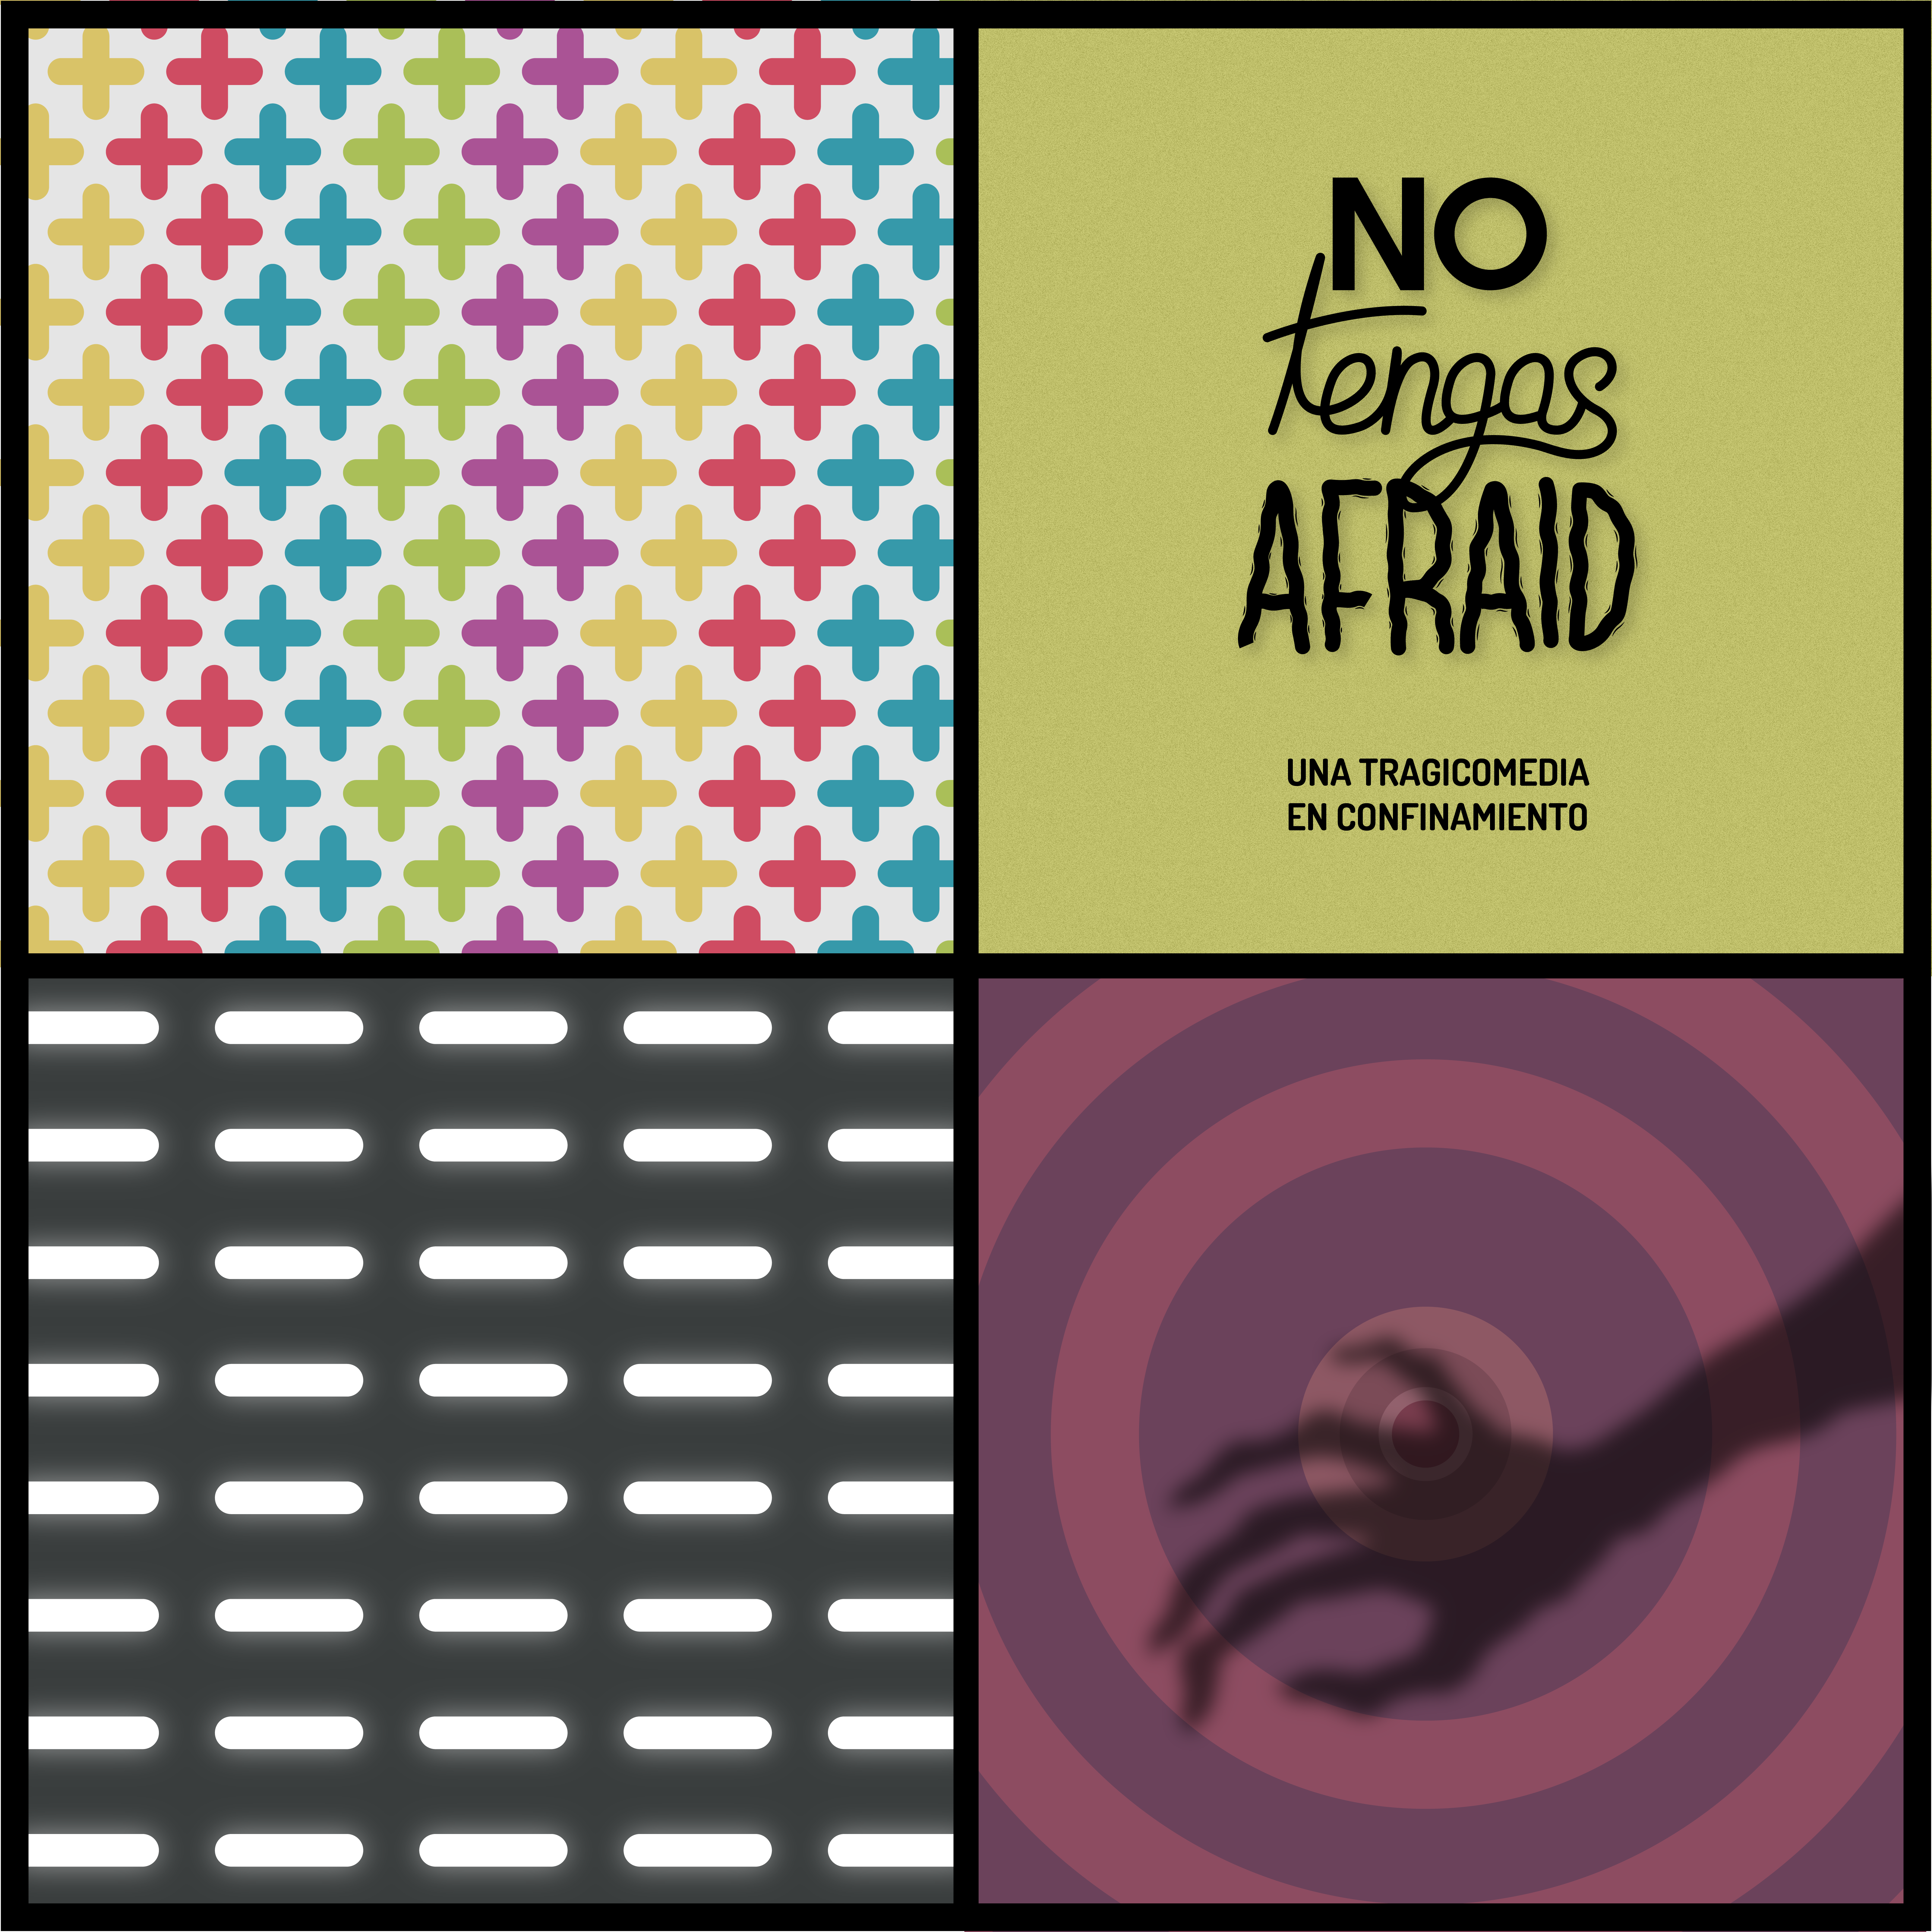 no tengas afraid corto cartel